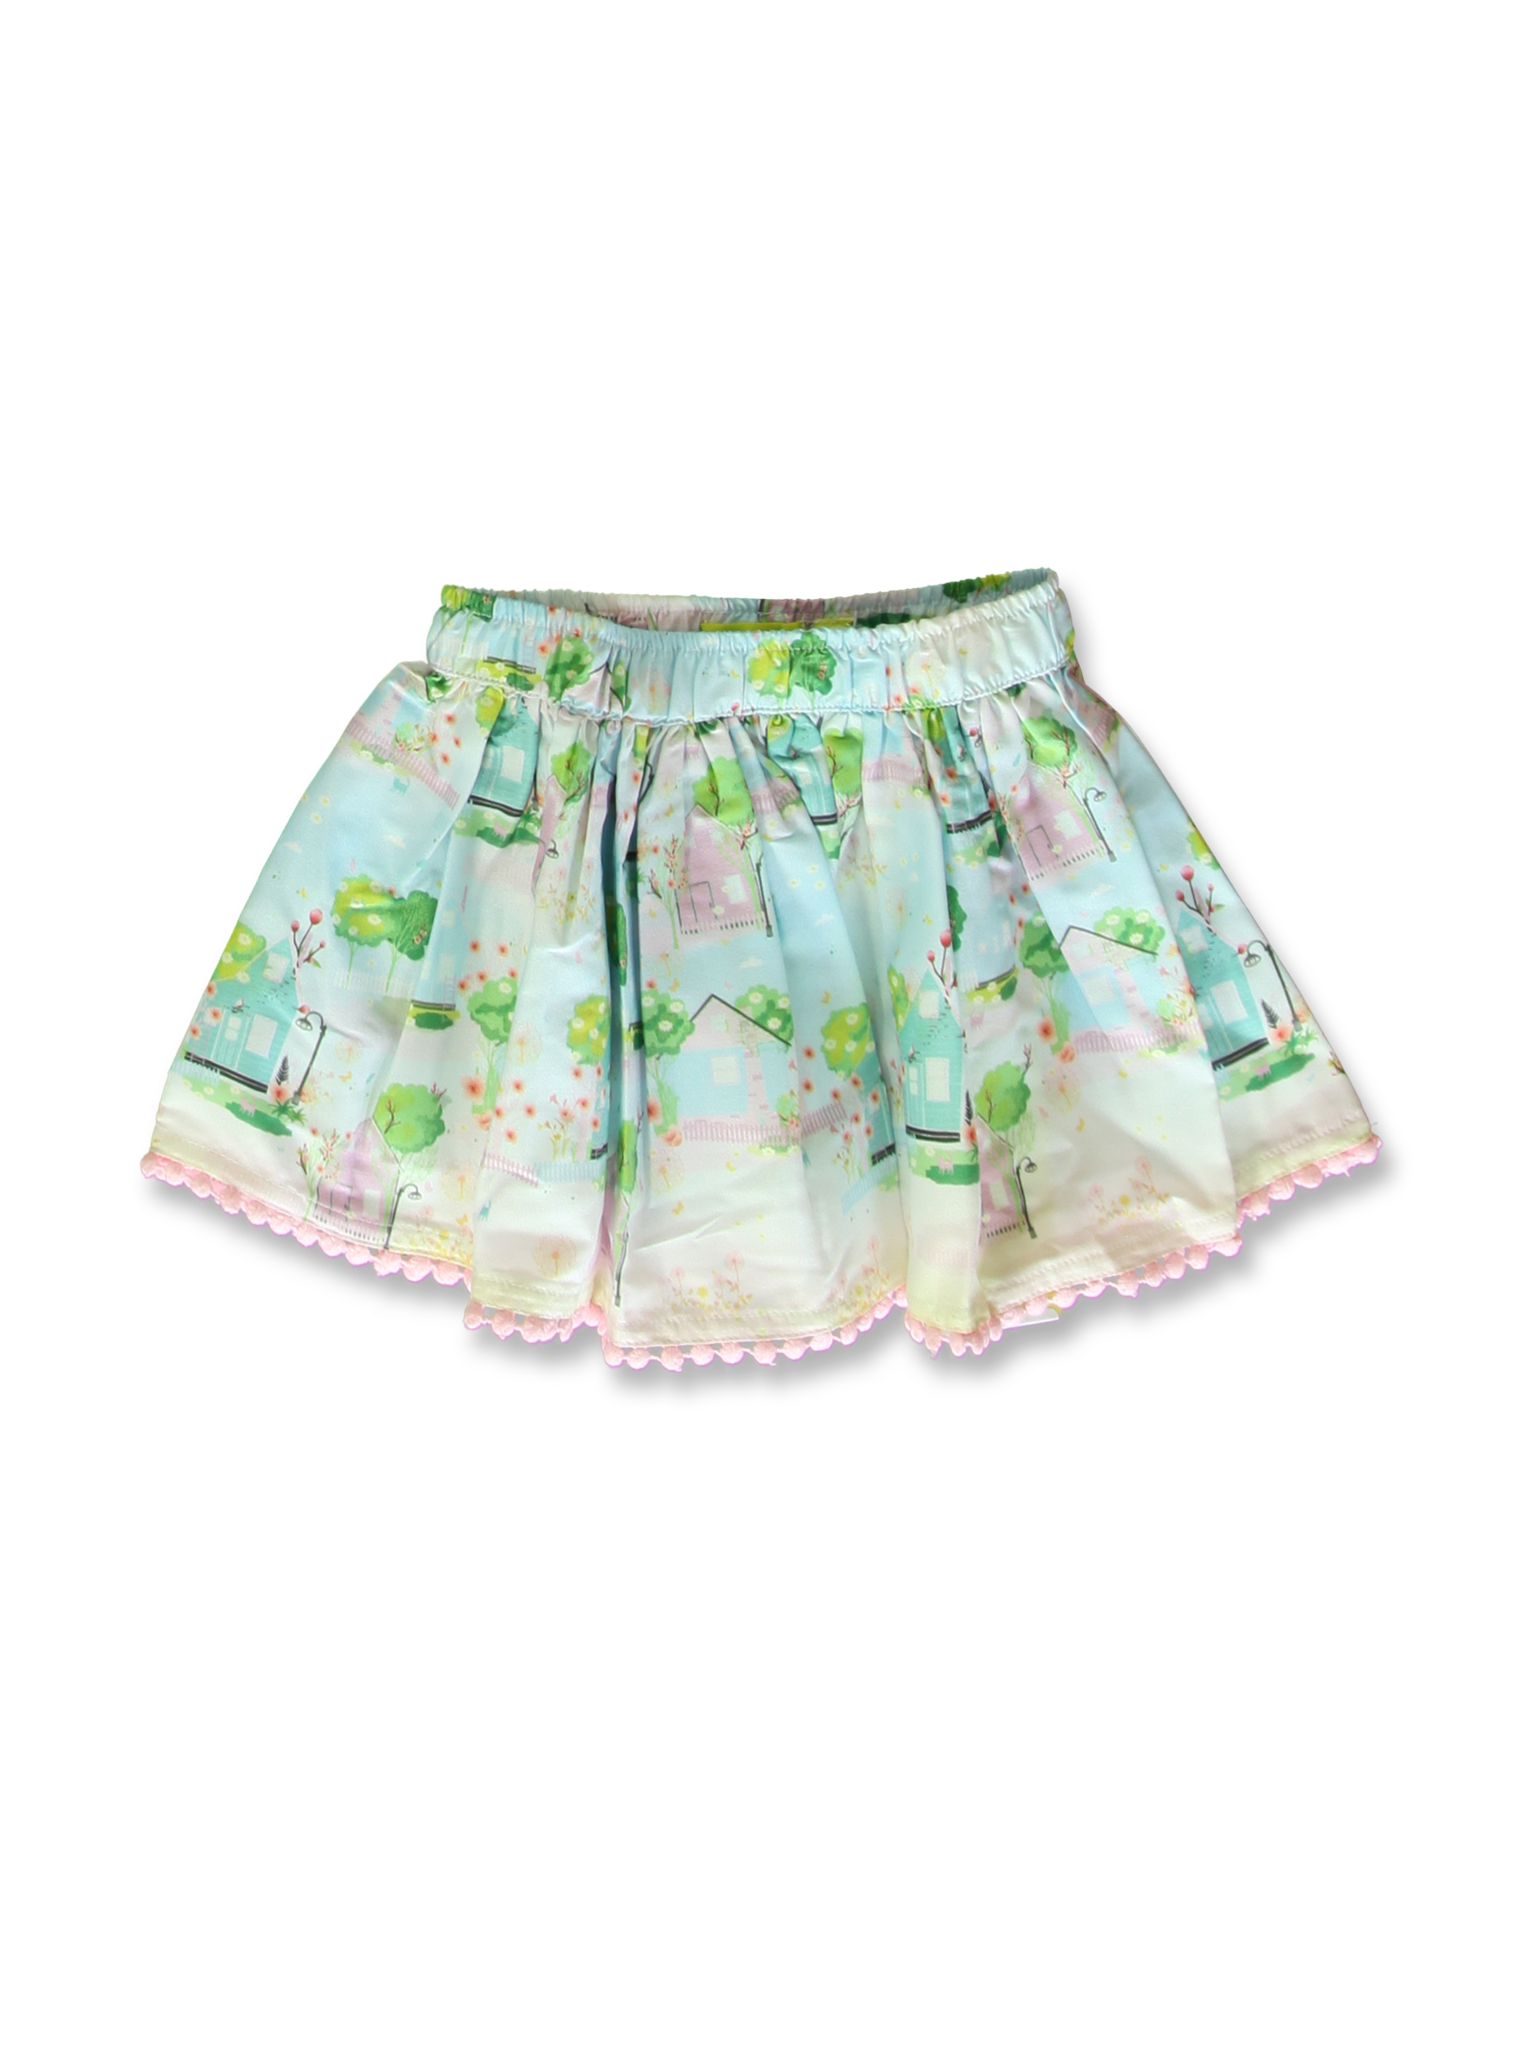 All Brands | Summerproducts Baby | Skirt | 8 pcs/box